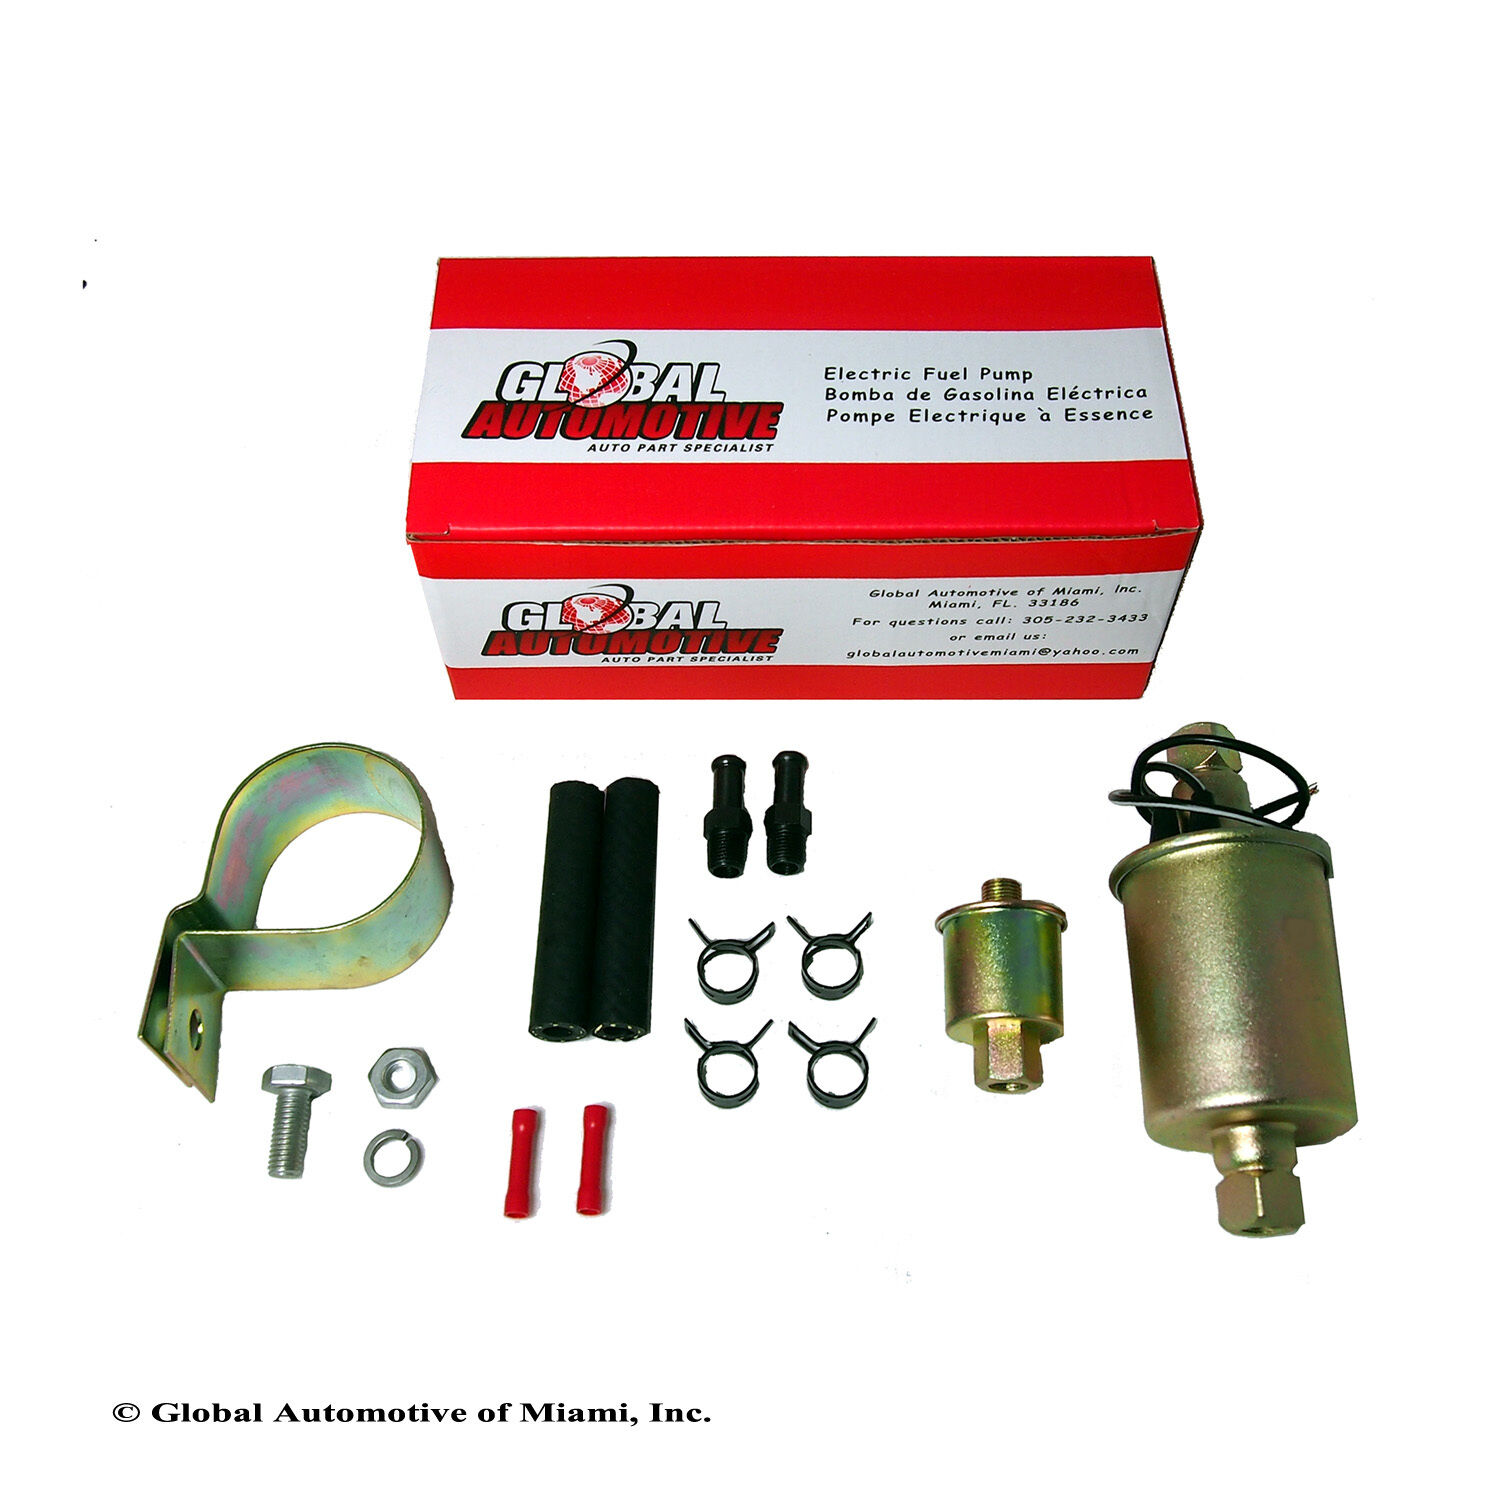 New Fuel Pump Upgraded Filter Kit 1999 2012 Polaris Ranger 1988 Nissan D21 Pickup 1 Of 1only 3 Available